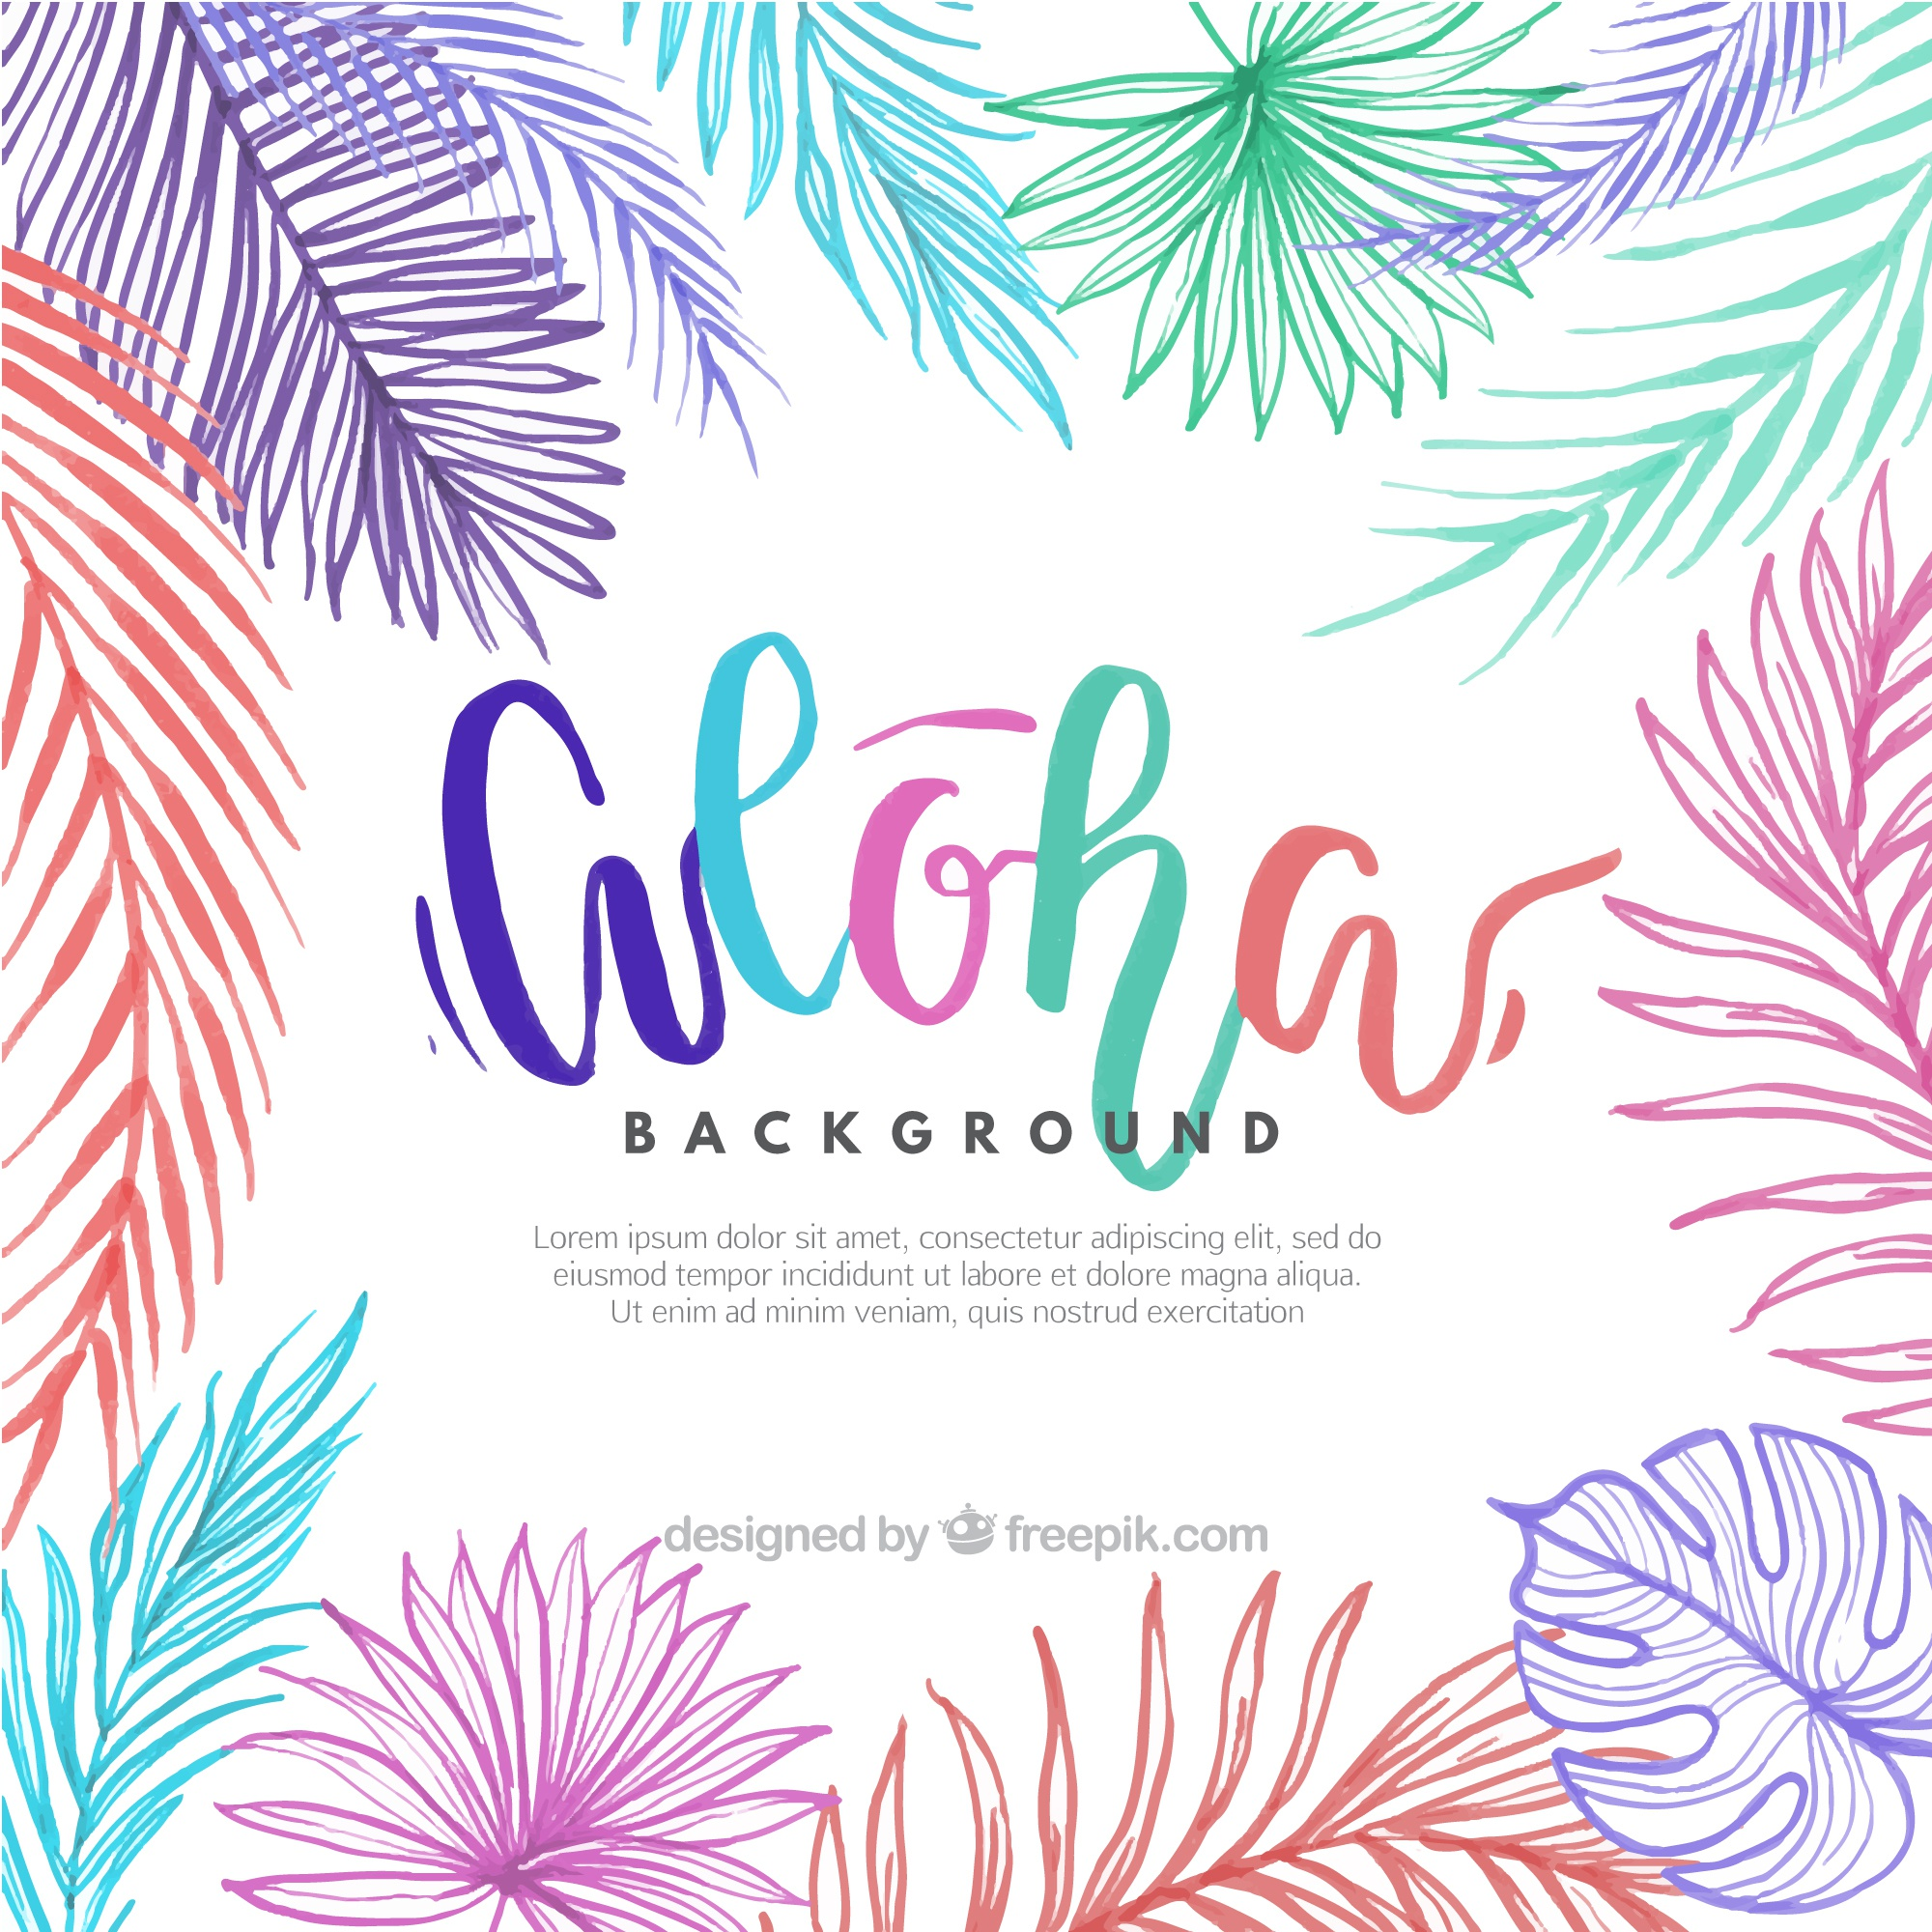 Background with sketches of colorful palm leaves